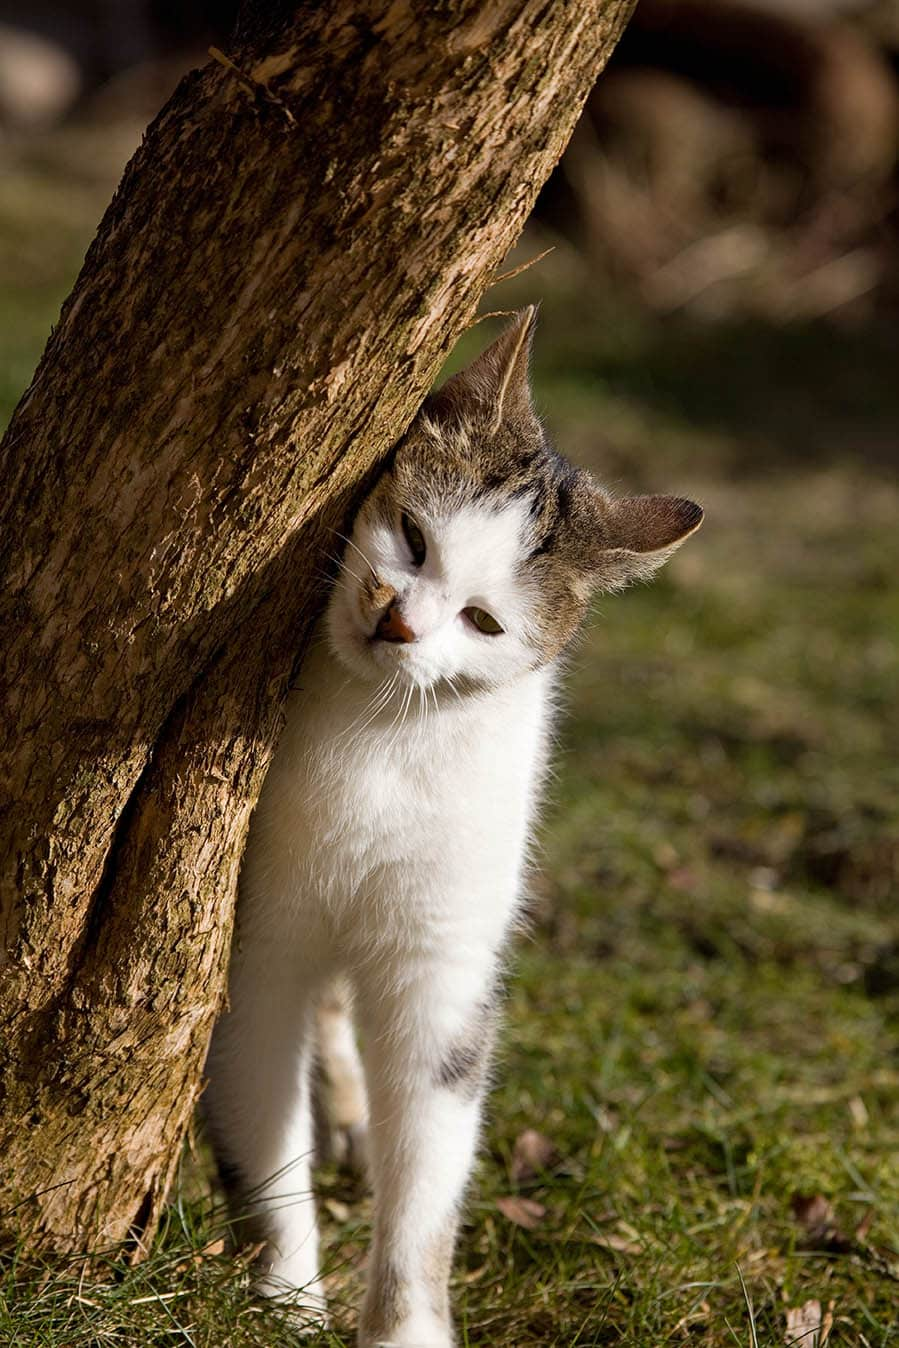 cat rubbing up against the tree